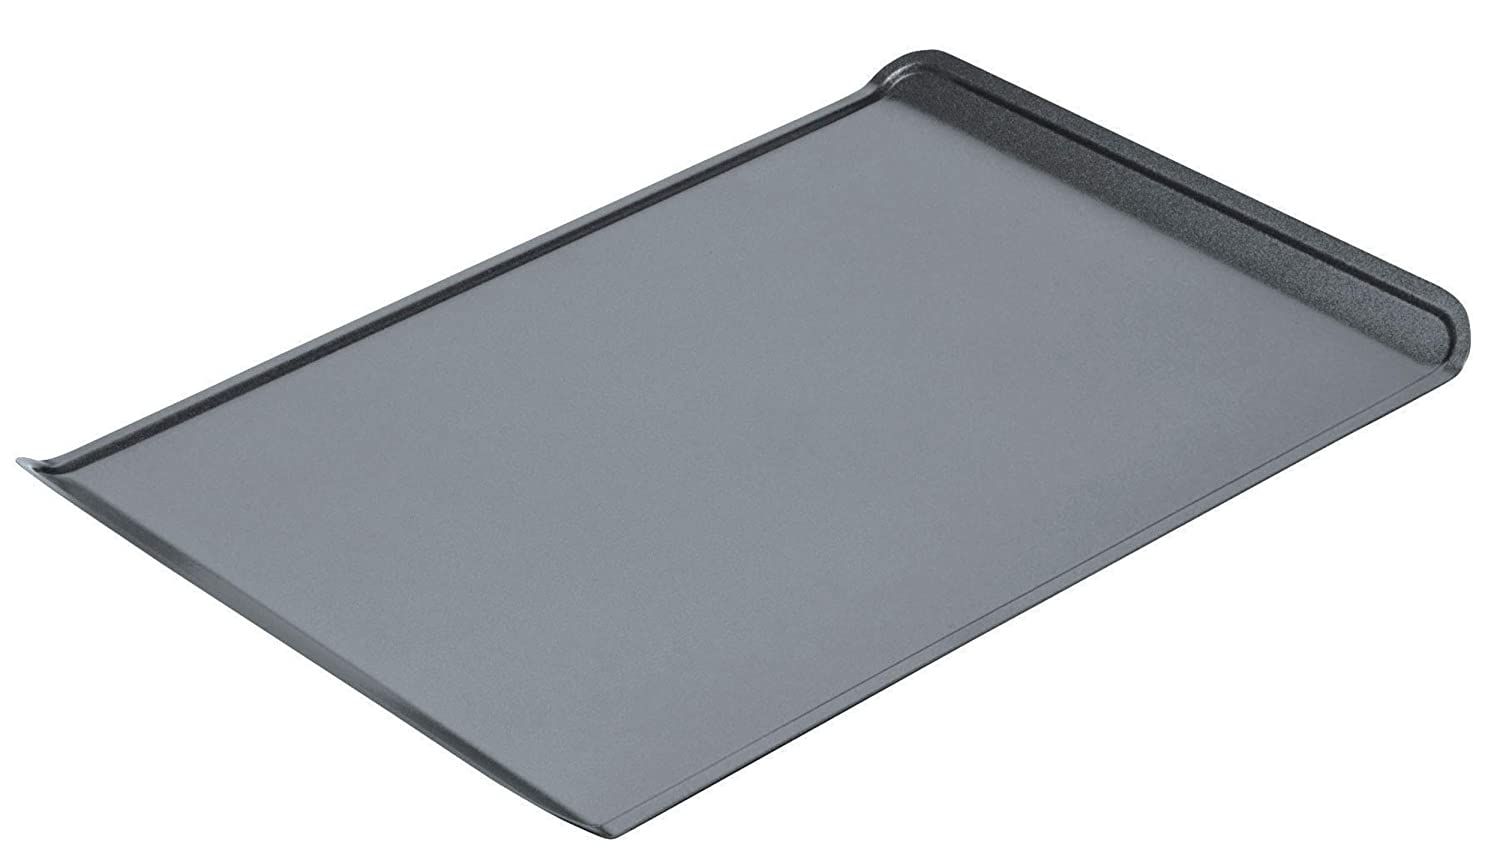 Chicago Metallic 16410 Professional Non-Stick Small Cooking/Baking Sheet, 13.5-Inch-by-9.25-Inch